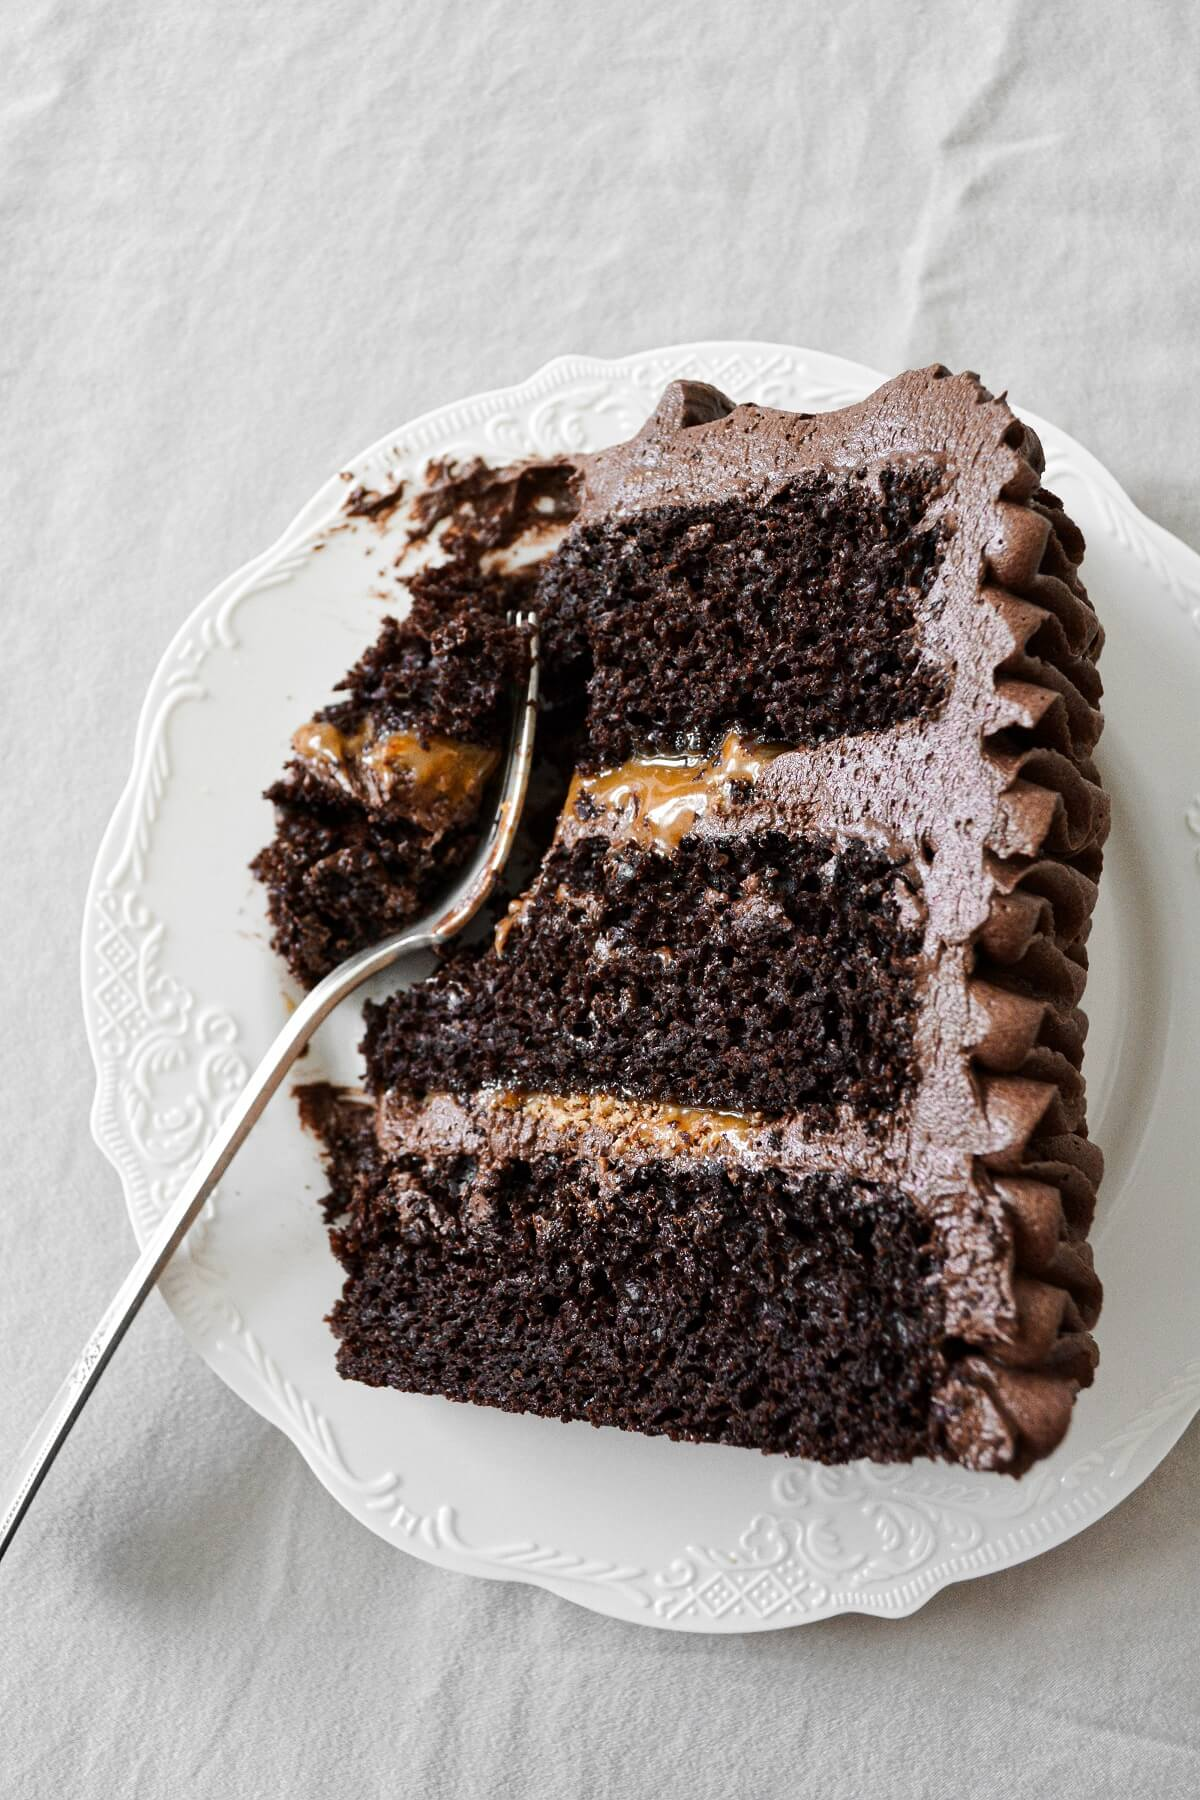 A slice of chocolate caramel toffee cake with piped ruffled buttercream.